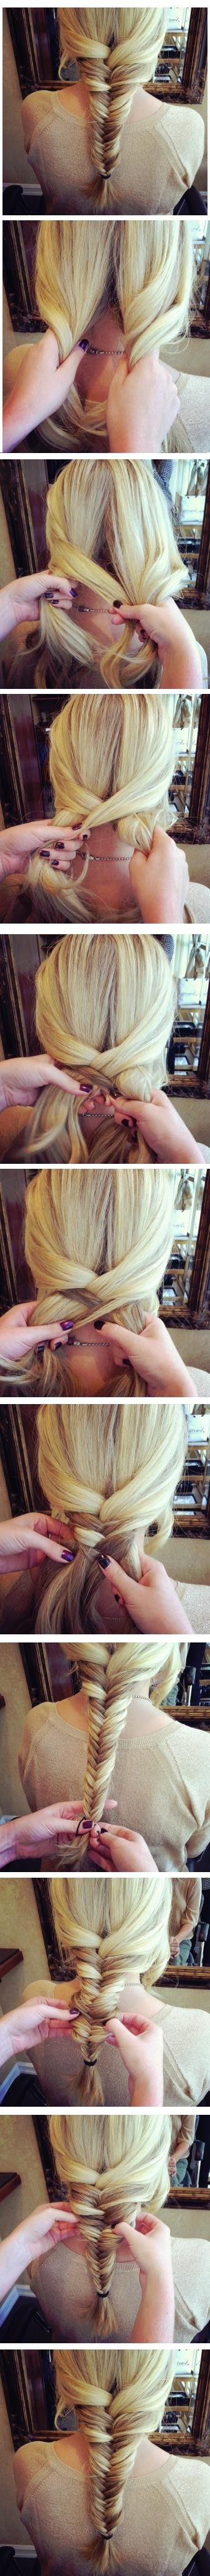 The lengthy hair is styled into a causal and lovely loose fishtail braid. Some side-parted layers are left out in front and most of the hair is combed back and then separated into three parts to gain the fun loose braid. Just a few simple steps can help gain the cool and romantic hairstyle. Smooth[Read the Rest]